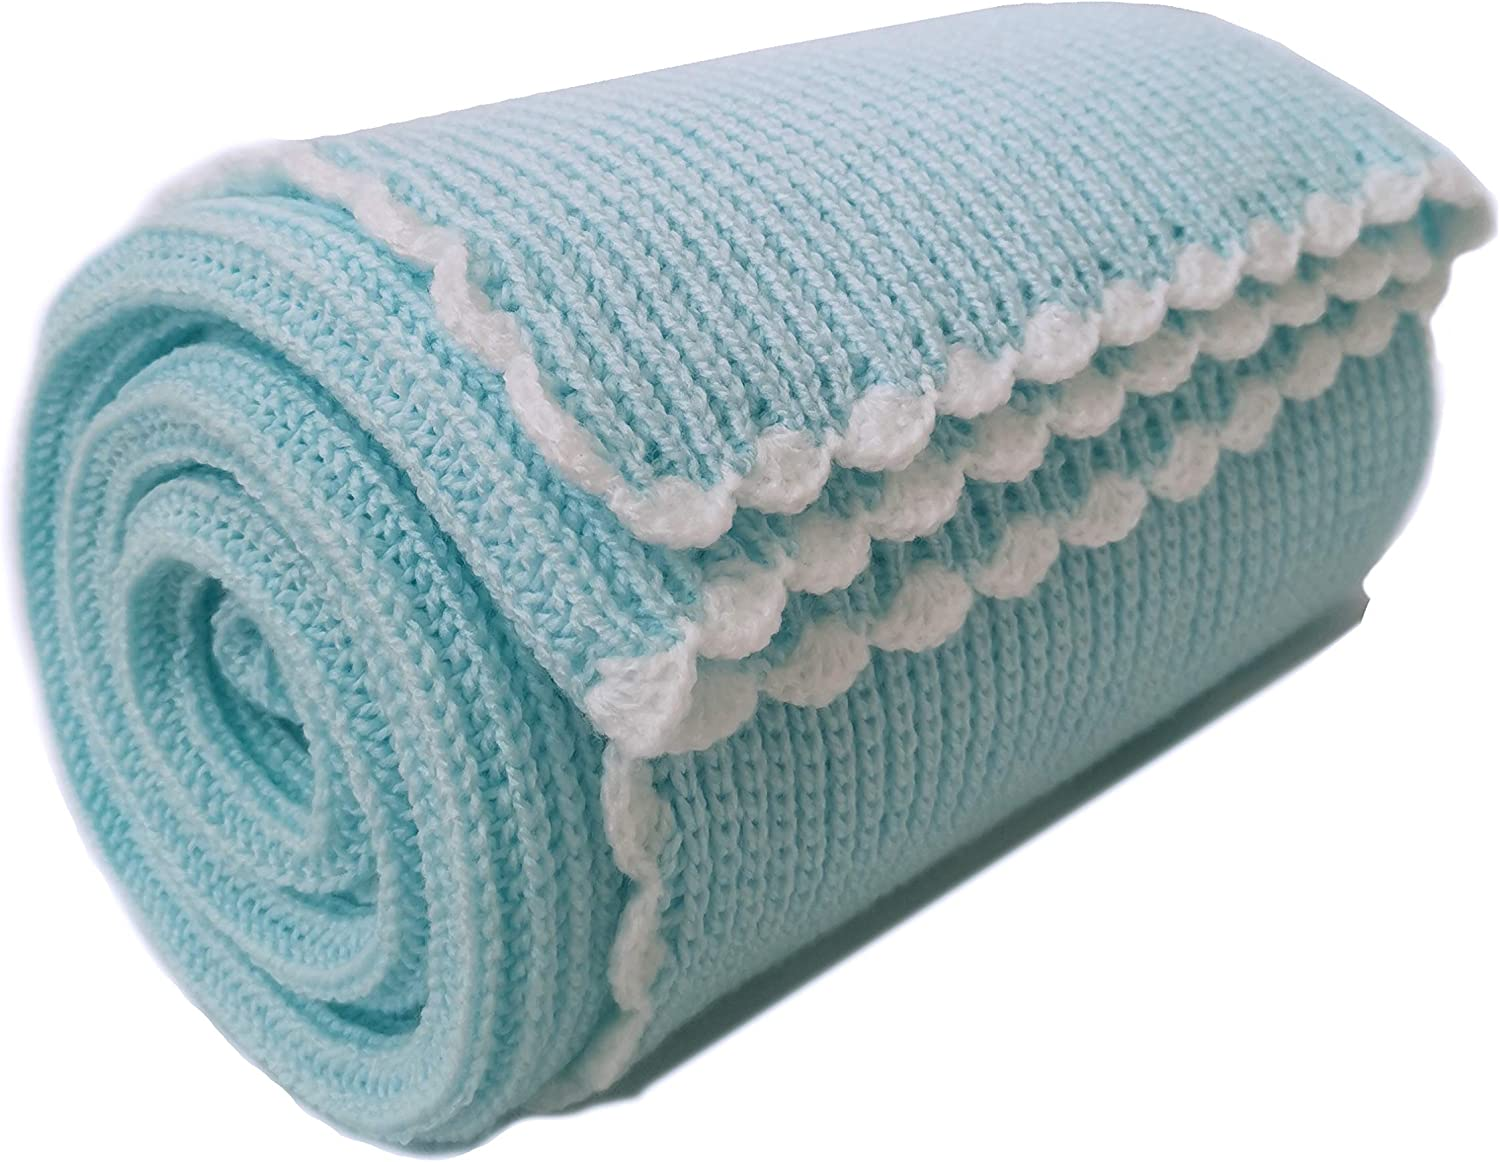 The Knit Wit Handmade Knitted Baby Cellular Blankets Small, Aqua